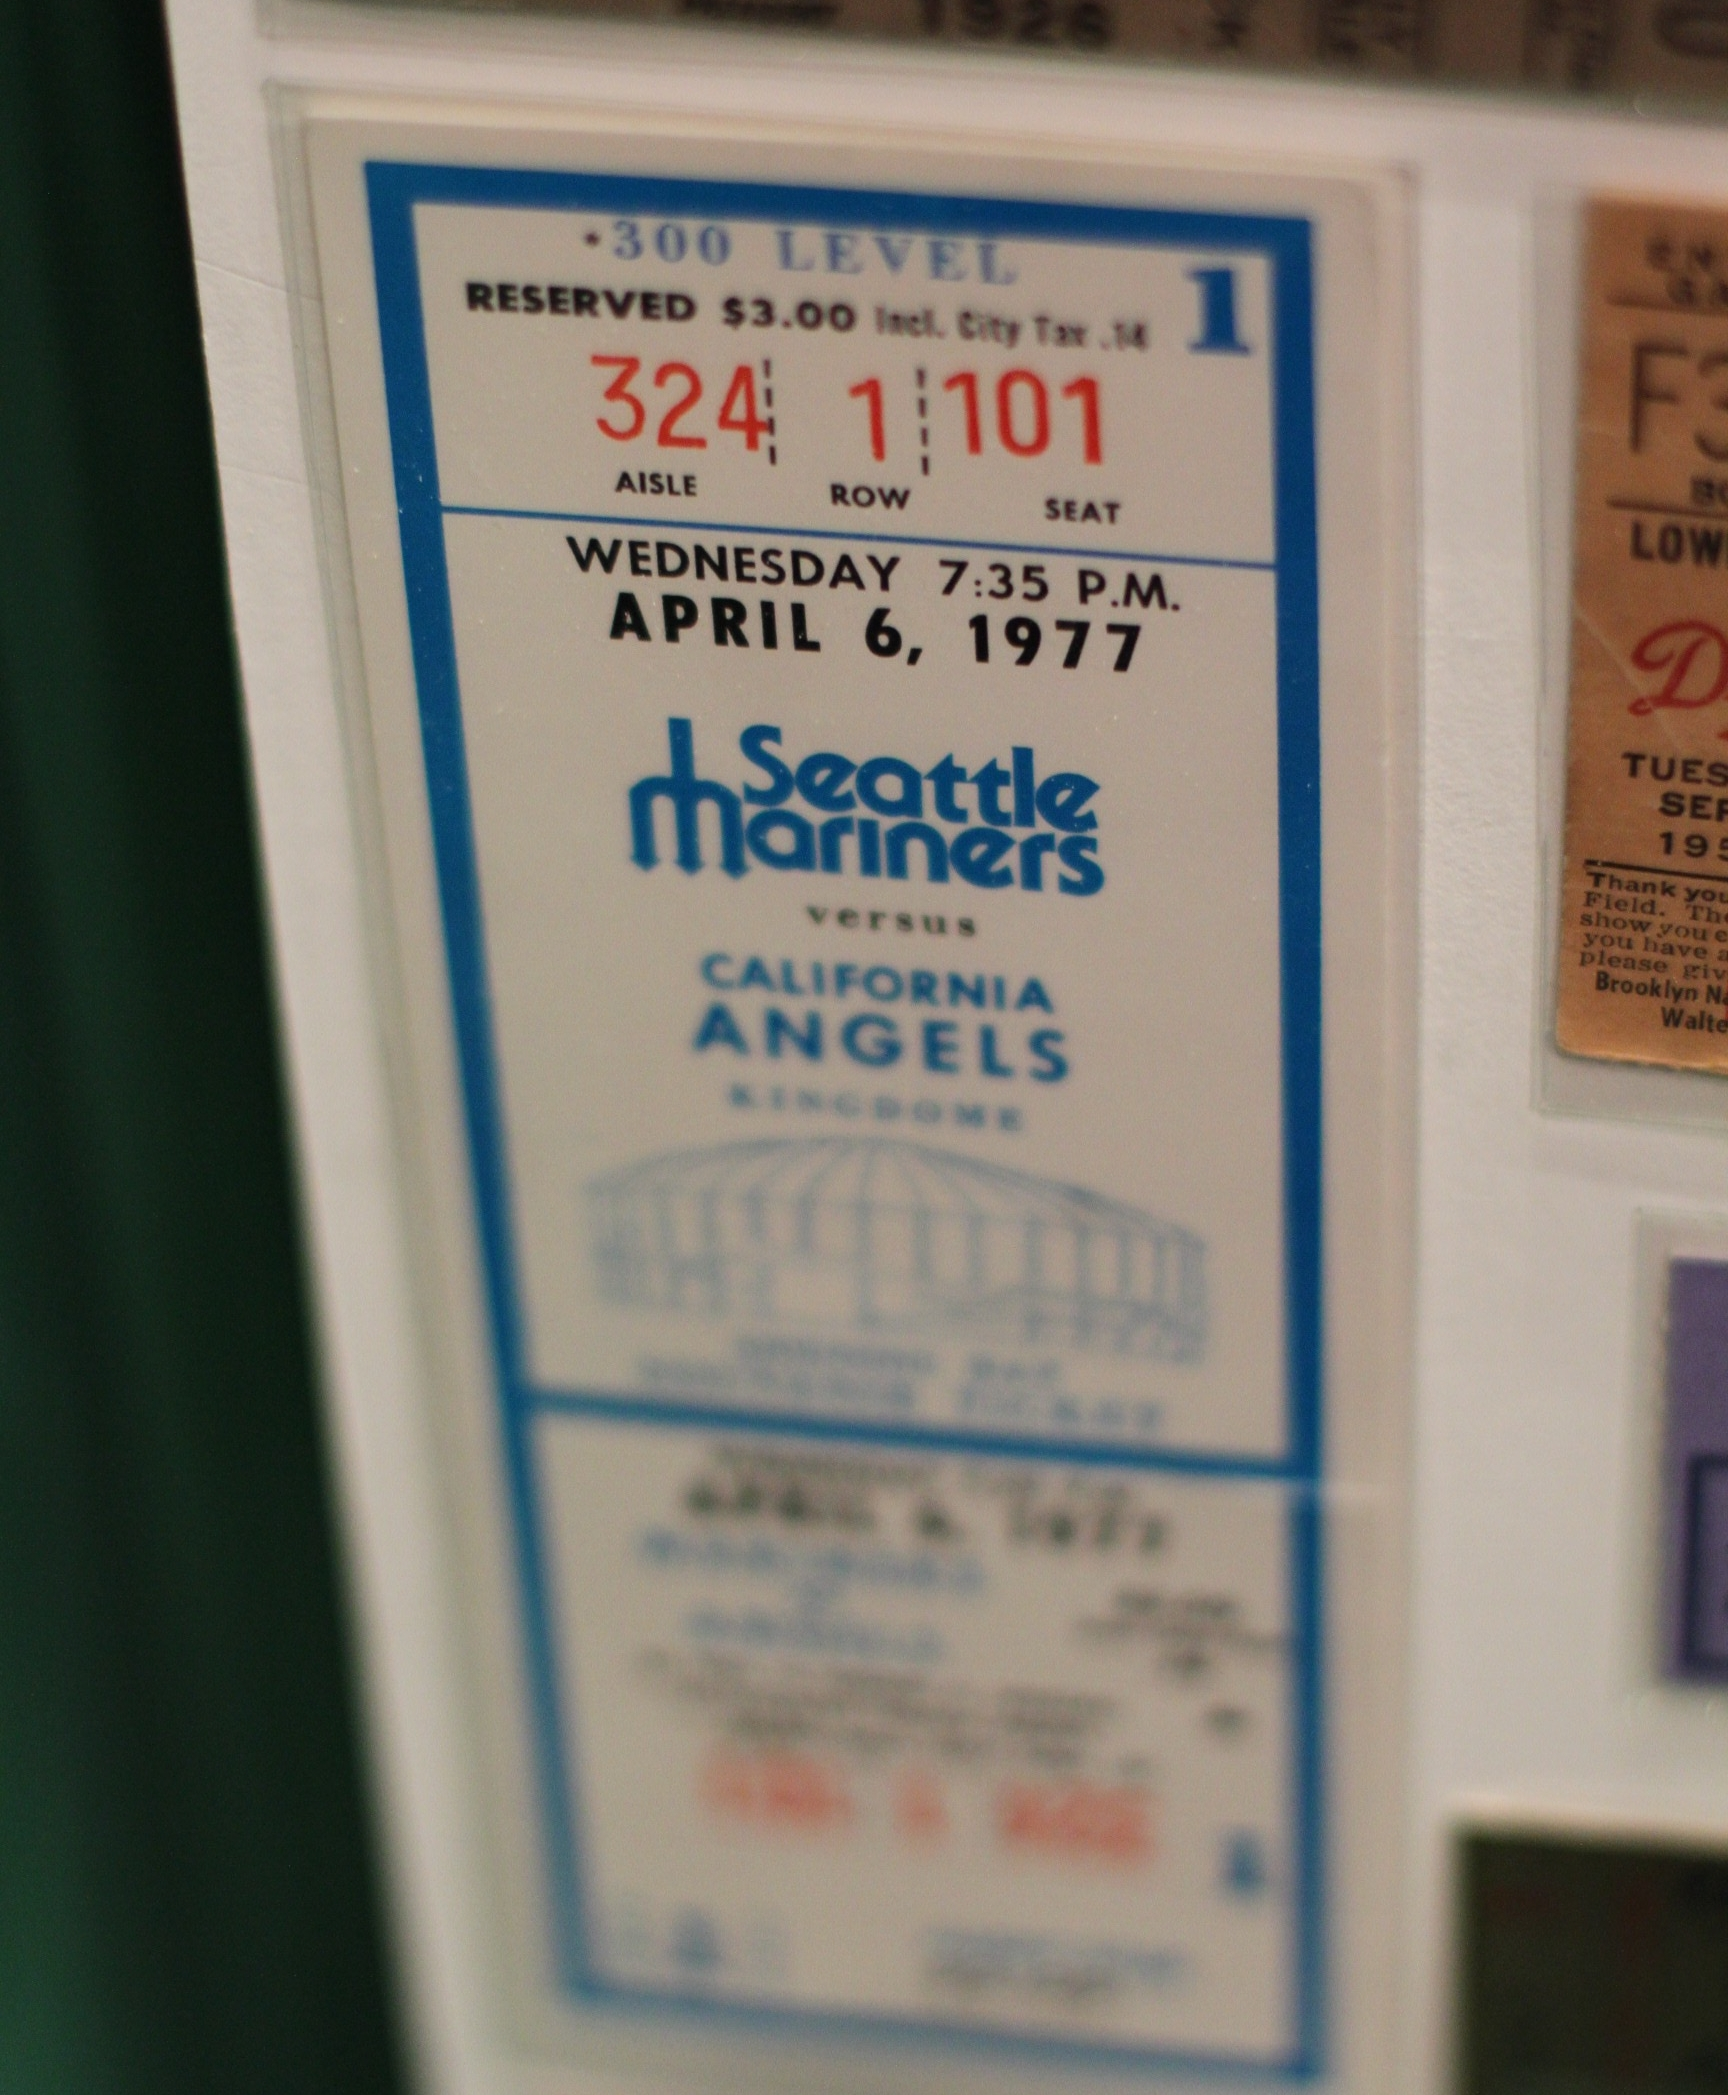 Seattle Mariners inaugural game ticket.